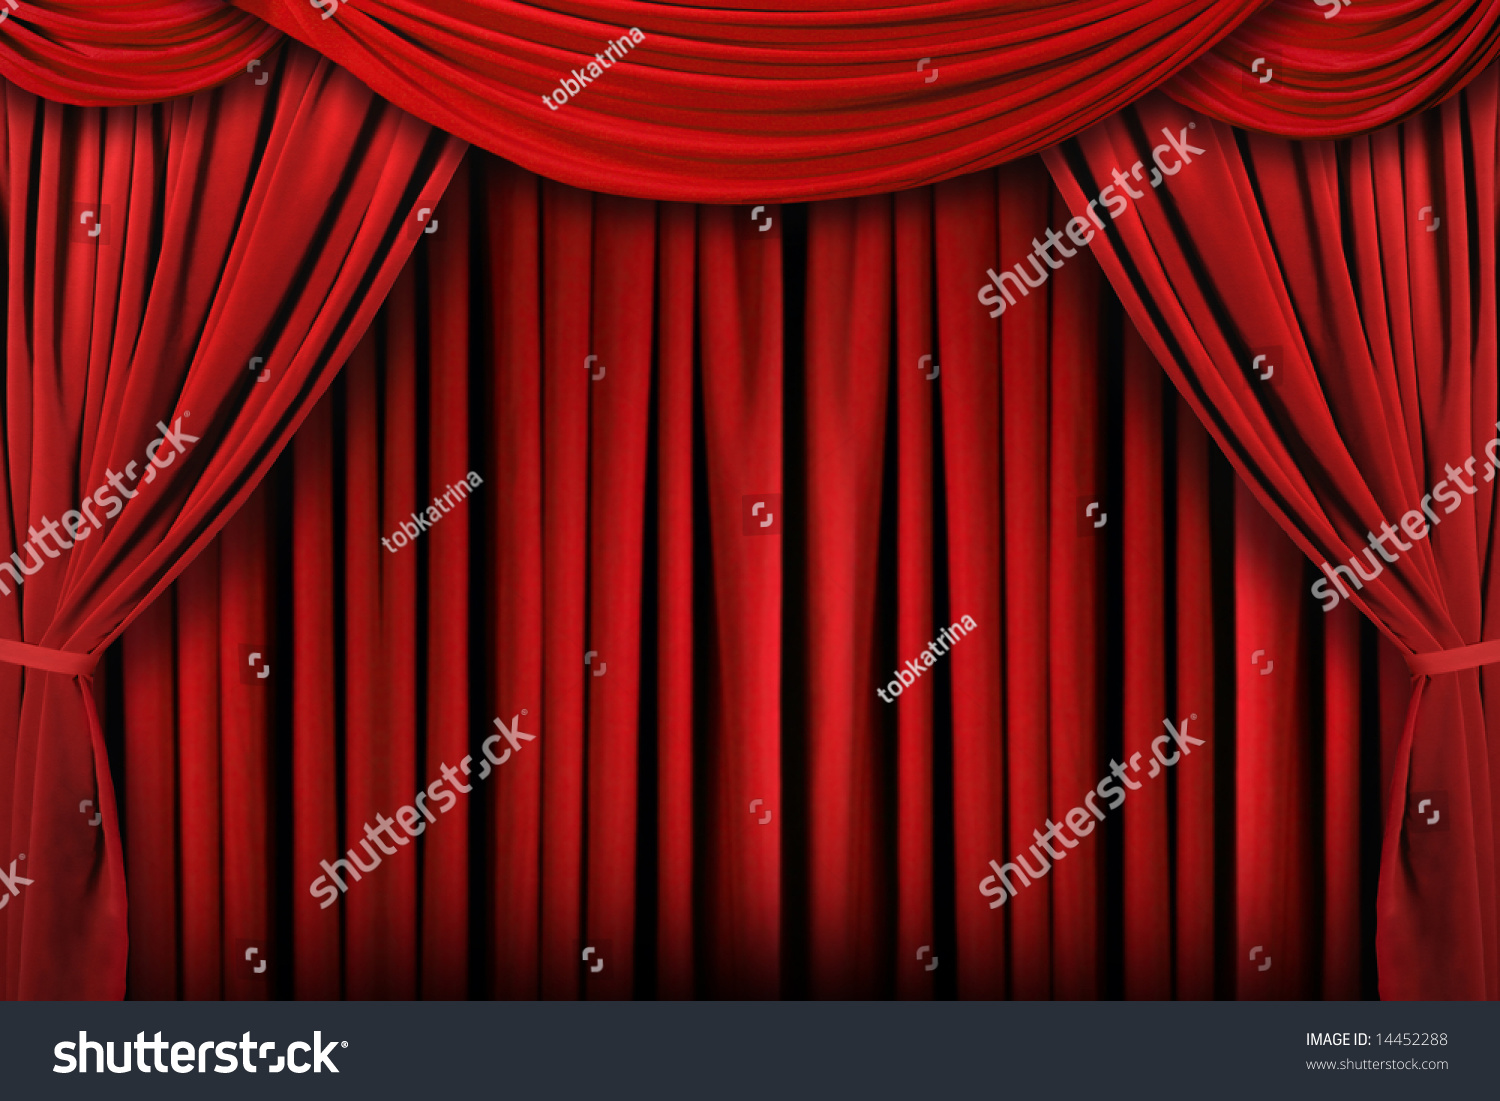 Stock photo dramatic red old fashioned elegant theater stage stock - Beautiful Indoor Theater Stage Background With Dramatic Lighting